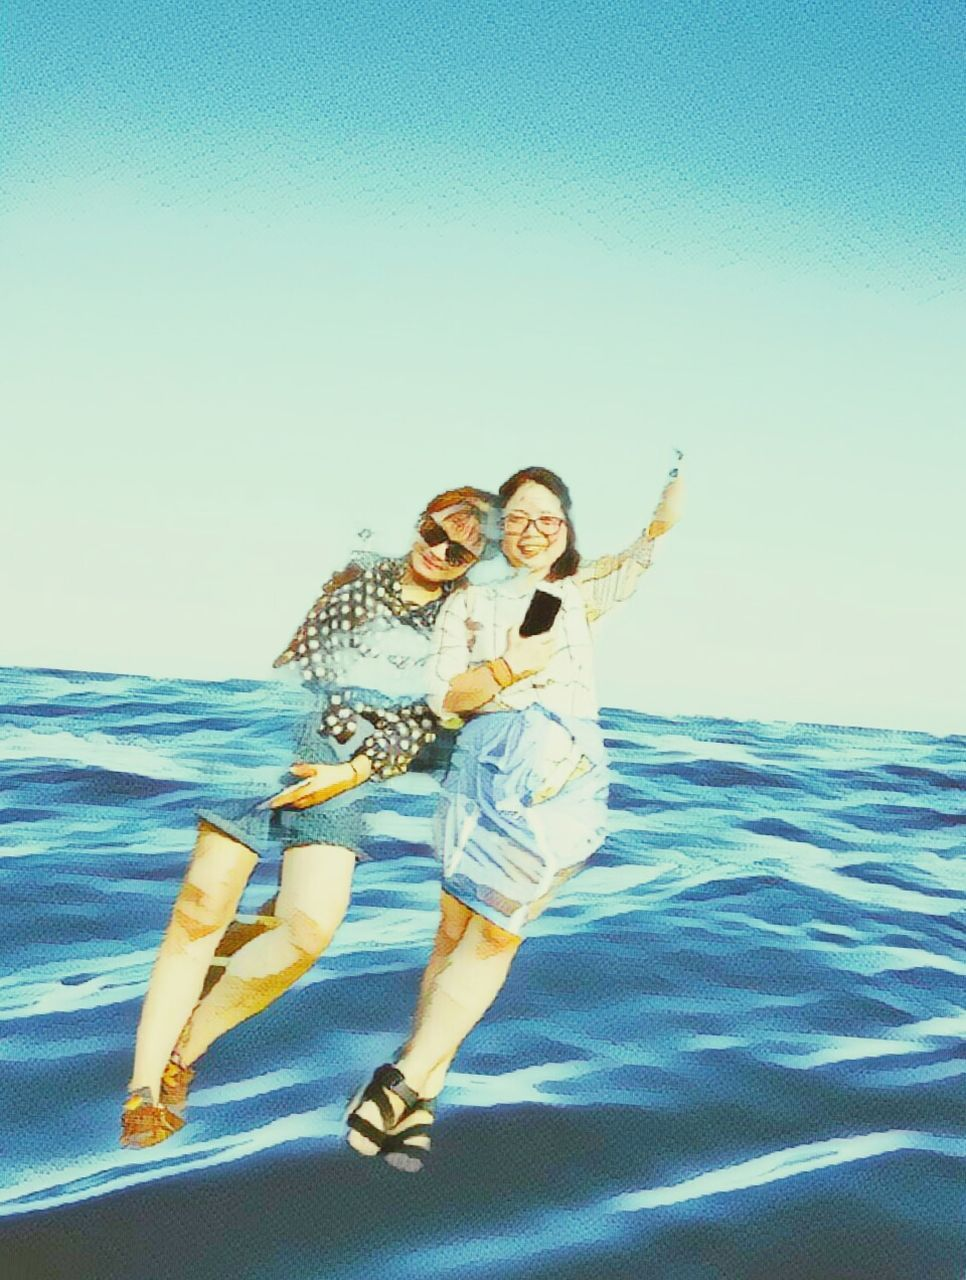 sea, water, smiling, happiness, full length, real people, young women, young adult, horizon over water, two people, leisure activity, vacations, clear sky, lifestyles, looking at camera, outdoors, beach, nature, day, beauty in nature, blue, cheerful, selfie, portrait, togetherness, sky, beautiful woman, photography themes